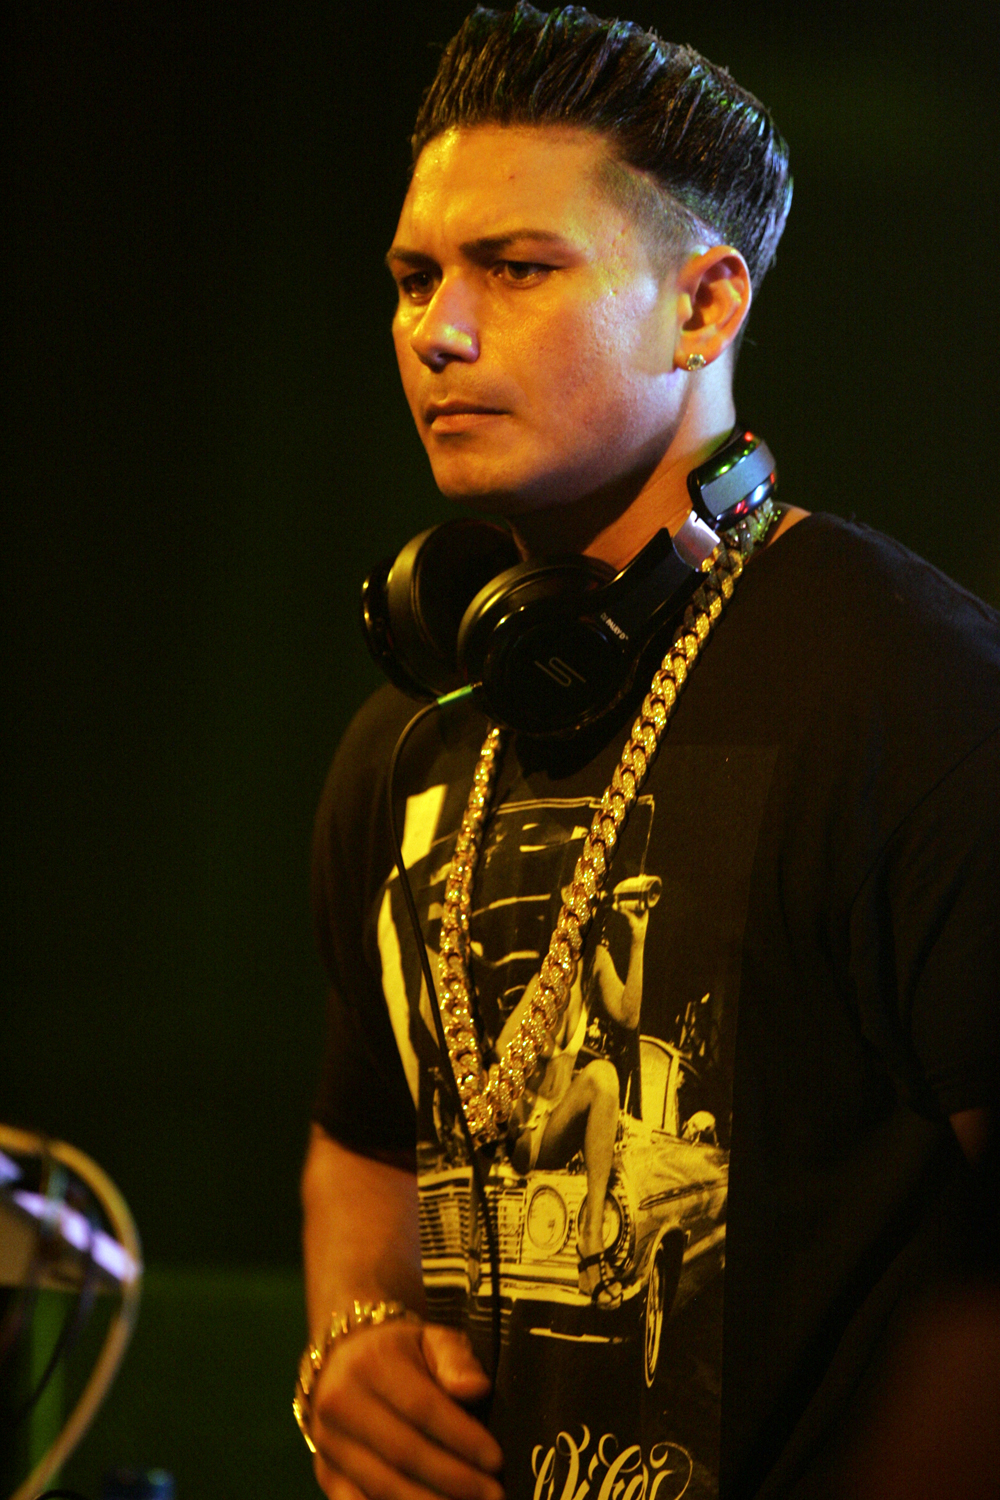 Pauly D with a haircut to sport the Blowout hairstyle during a DJ party